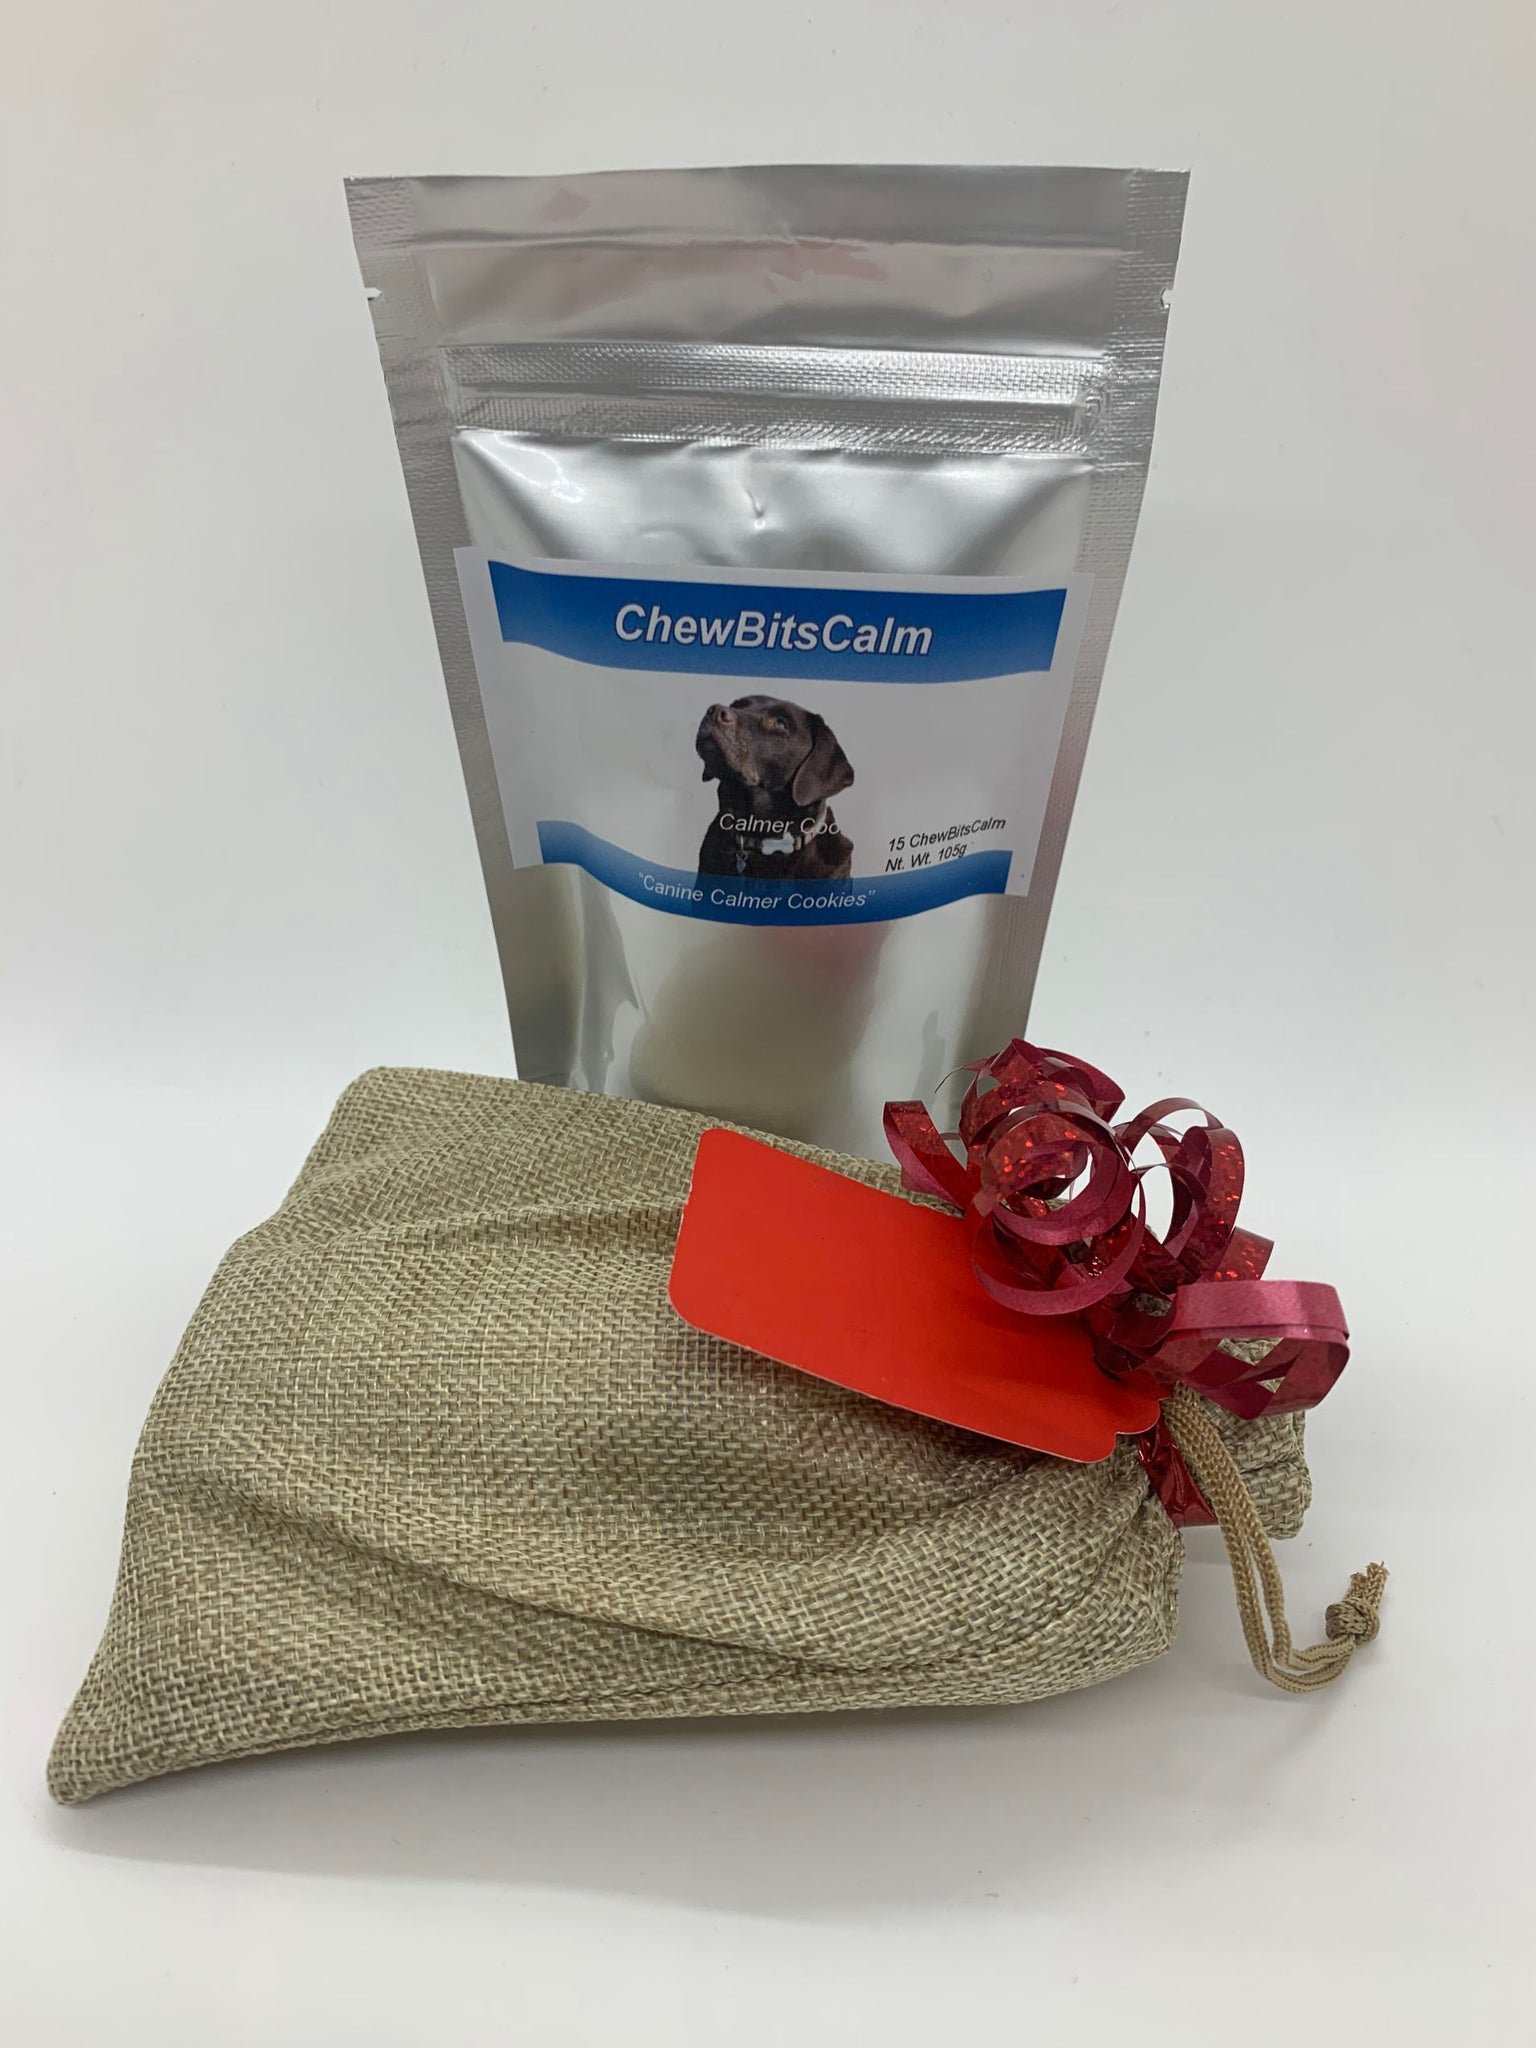 Christmas ChewBitsCalm - Limited Offer